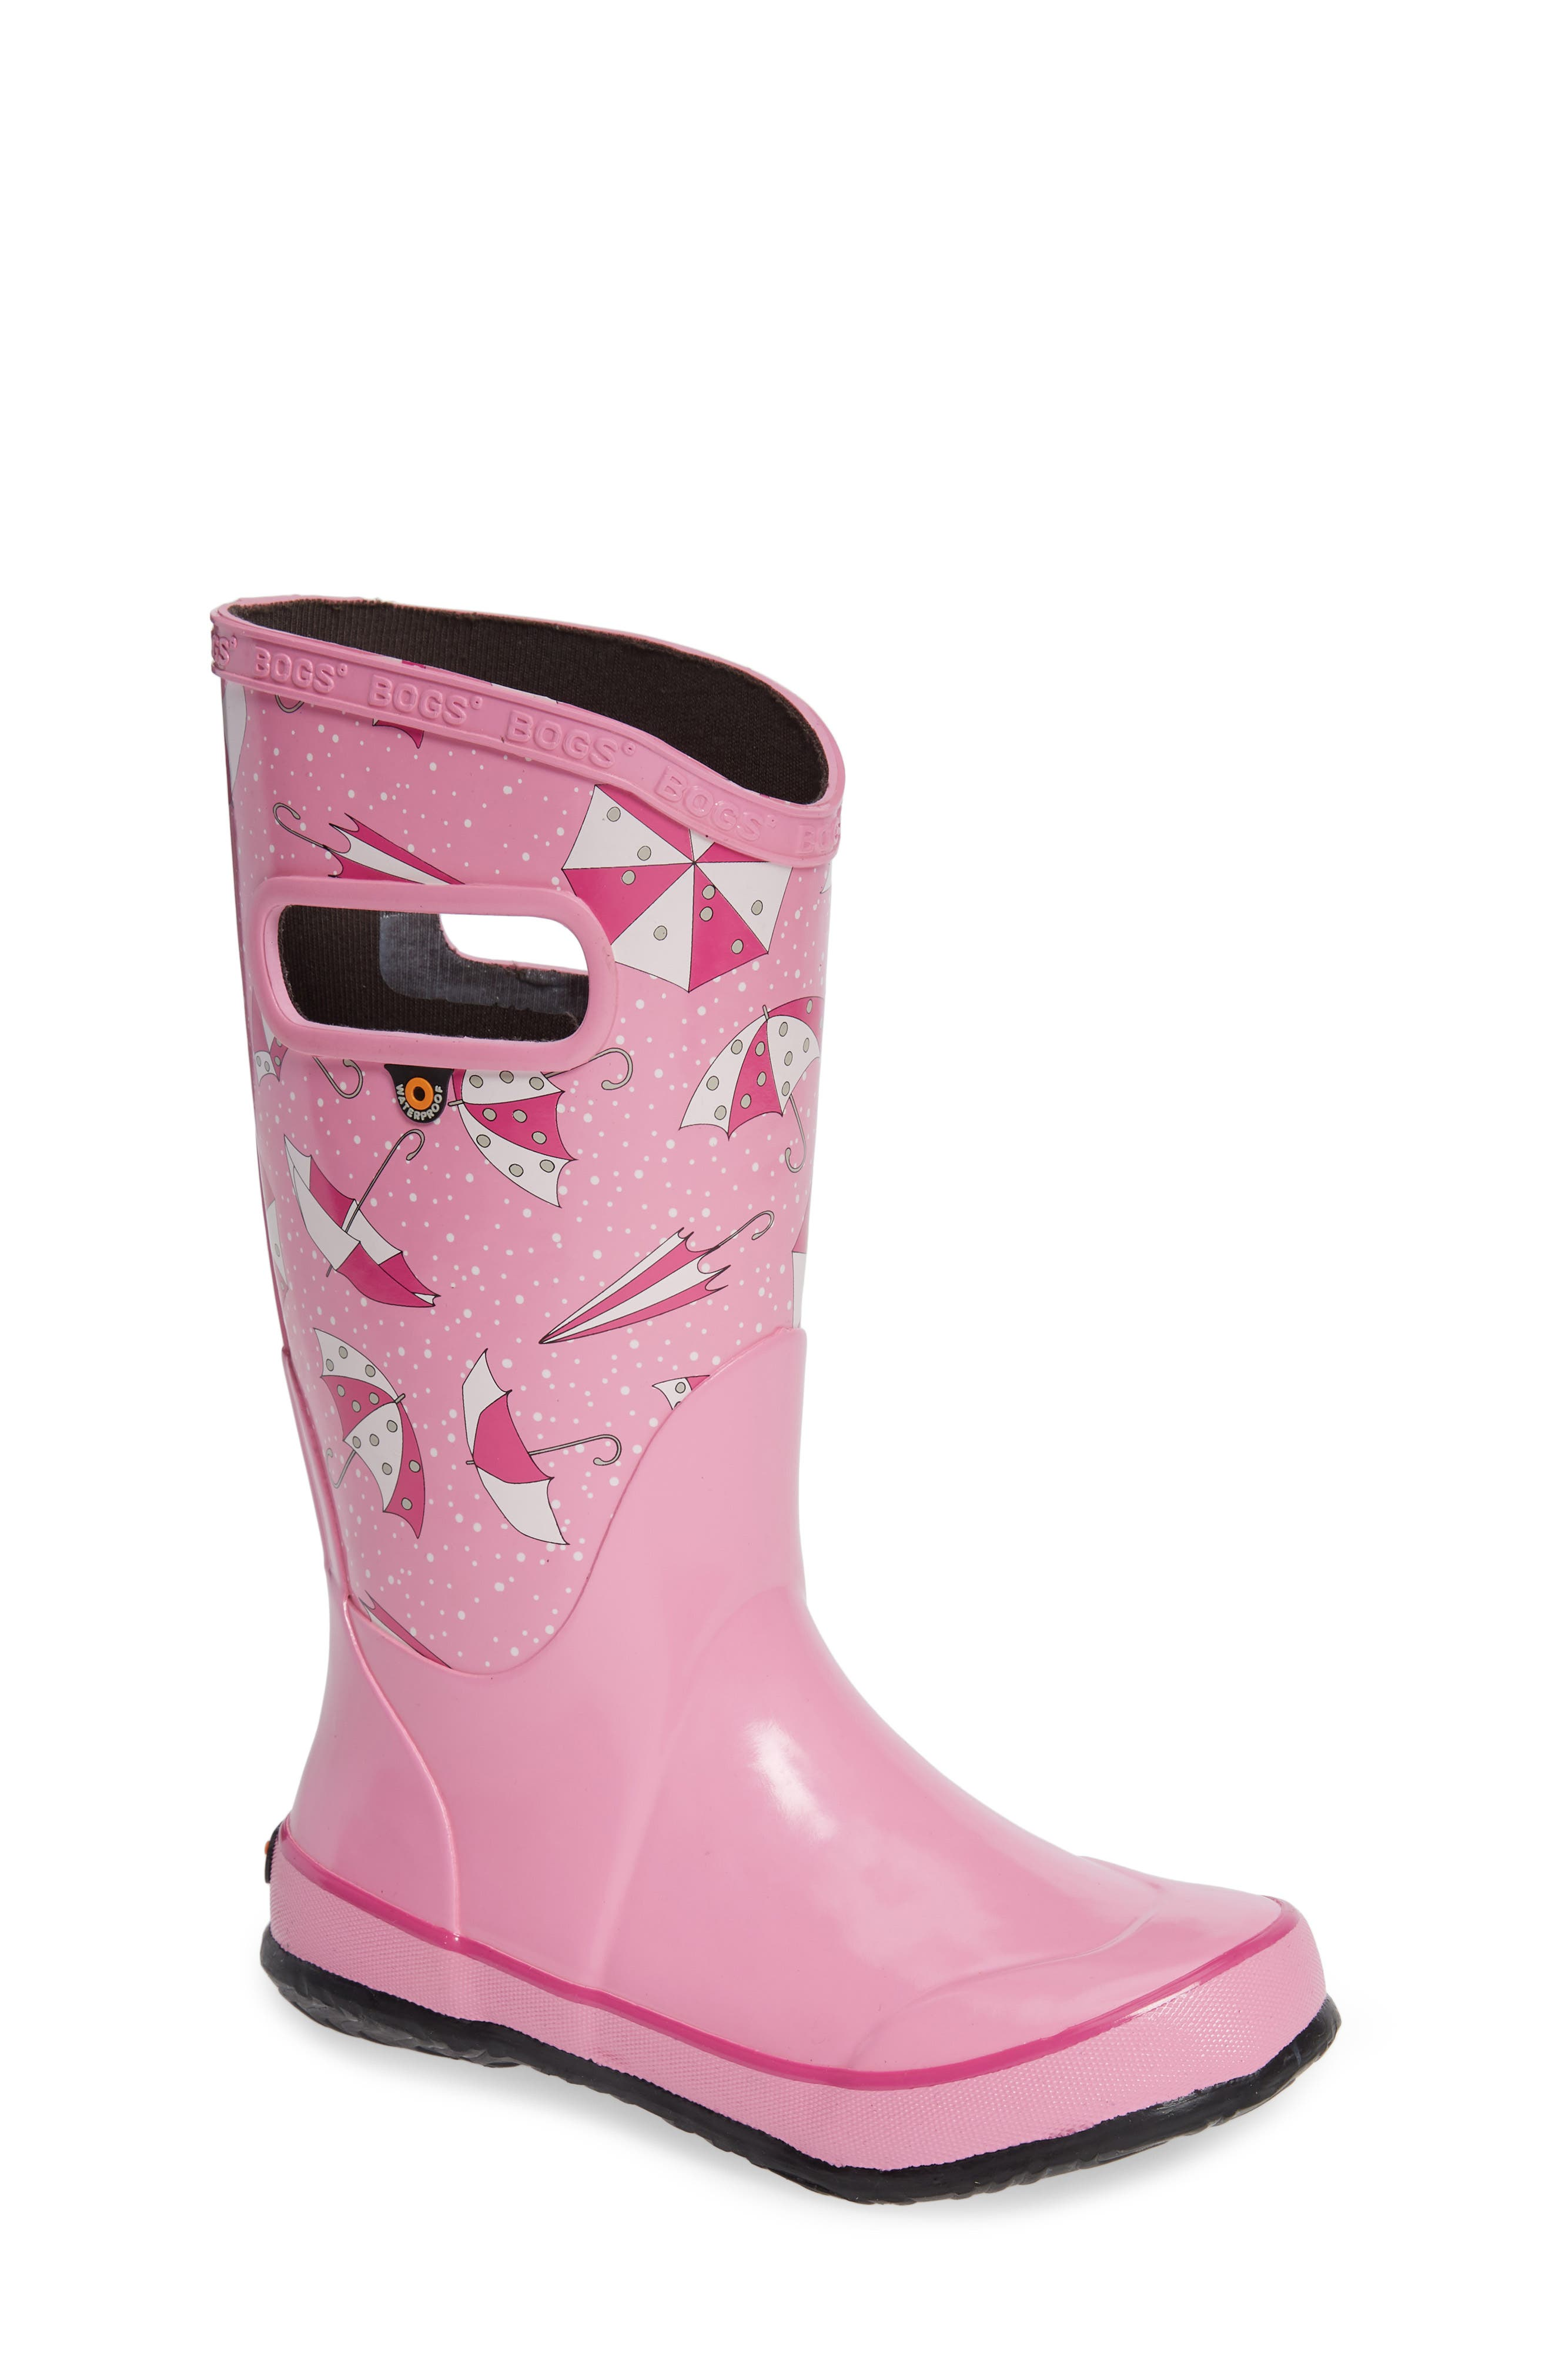 Umbrellas Waterproof Rubber Rain Boot,                             Main thumbnail 1, color,                             Pink Multi